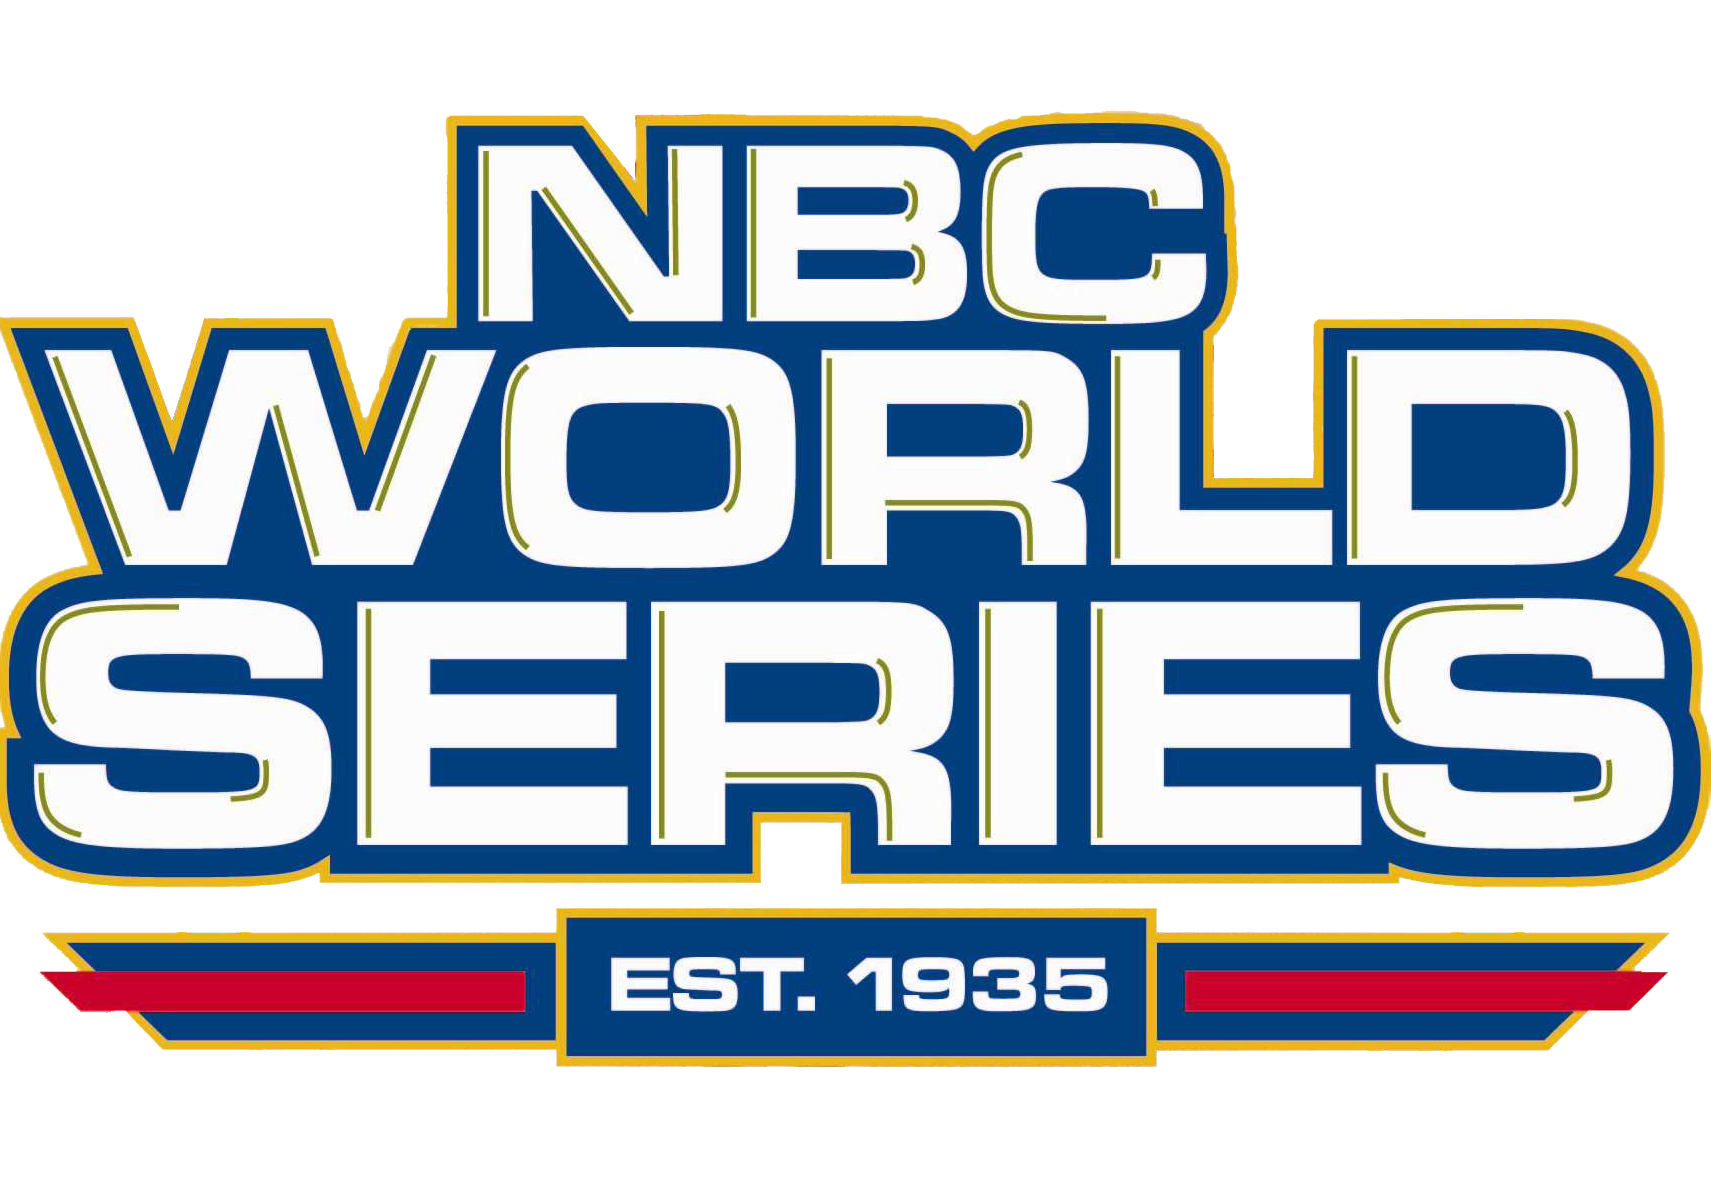 NBC World Series